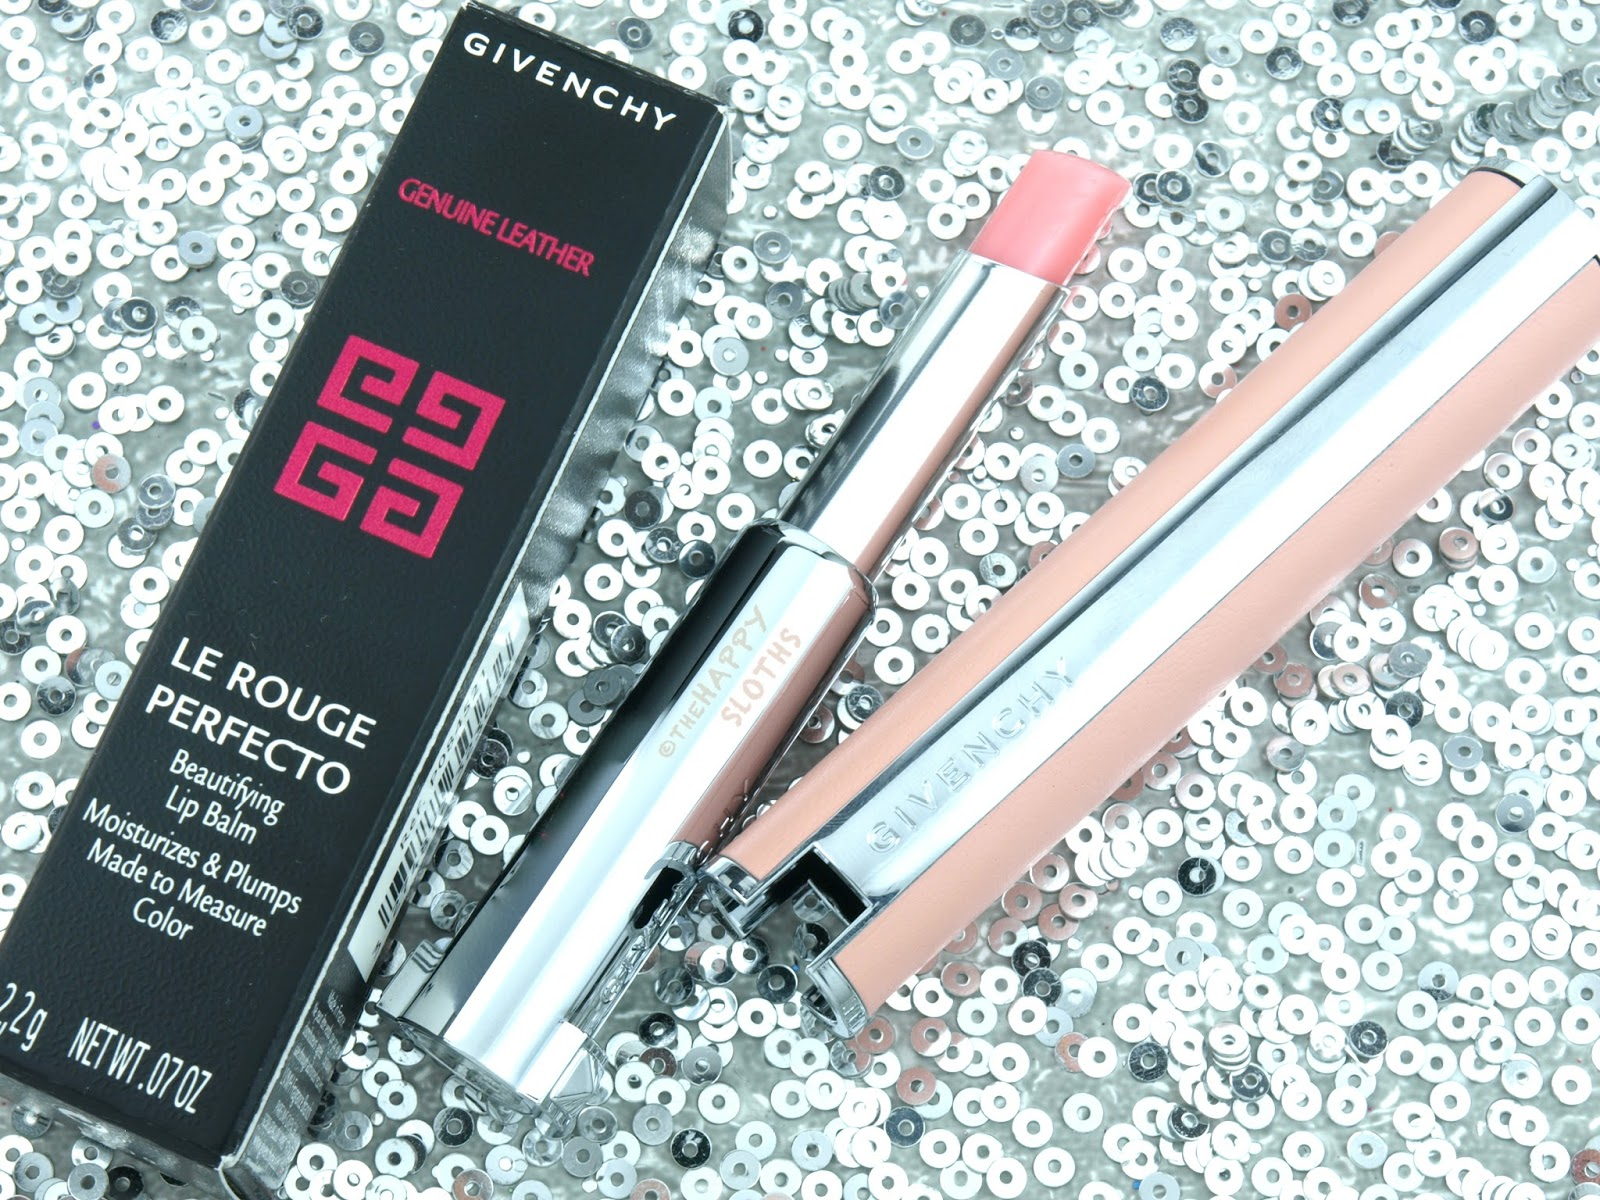 Givenchy Le Rouge Perfecto Beautifying Lip Balm Review and Swatches